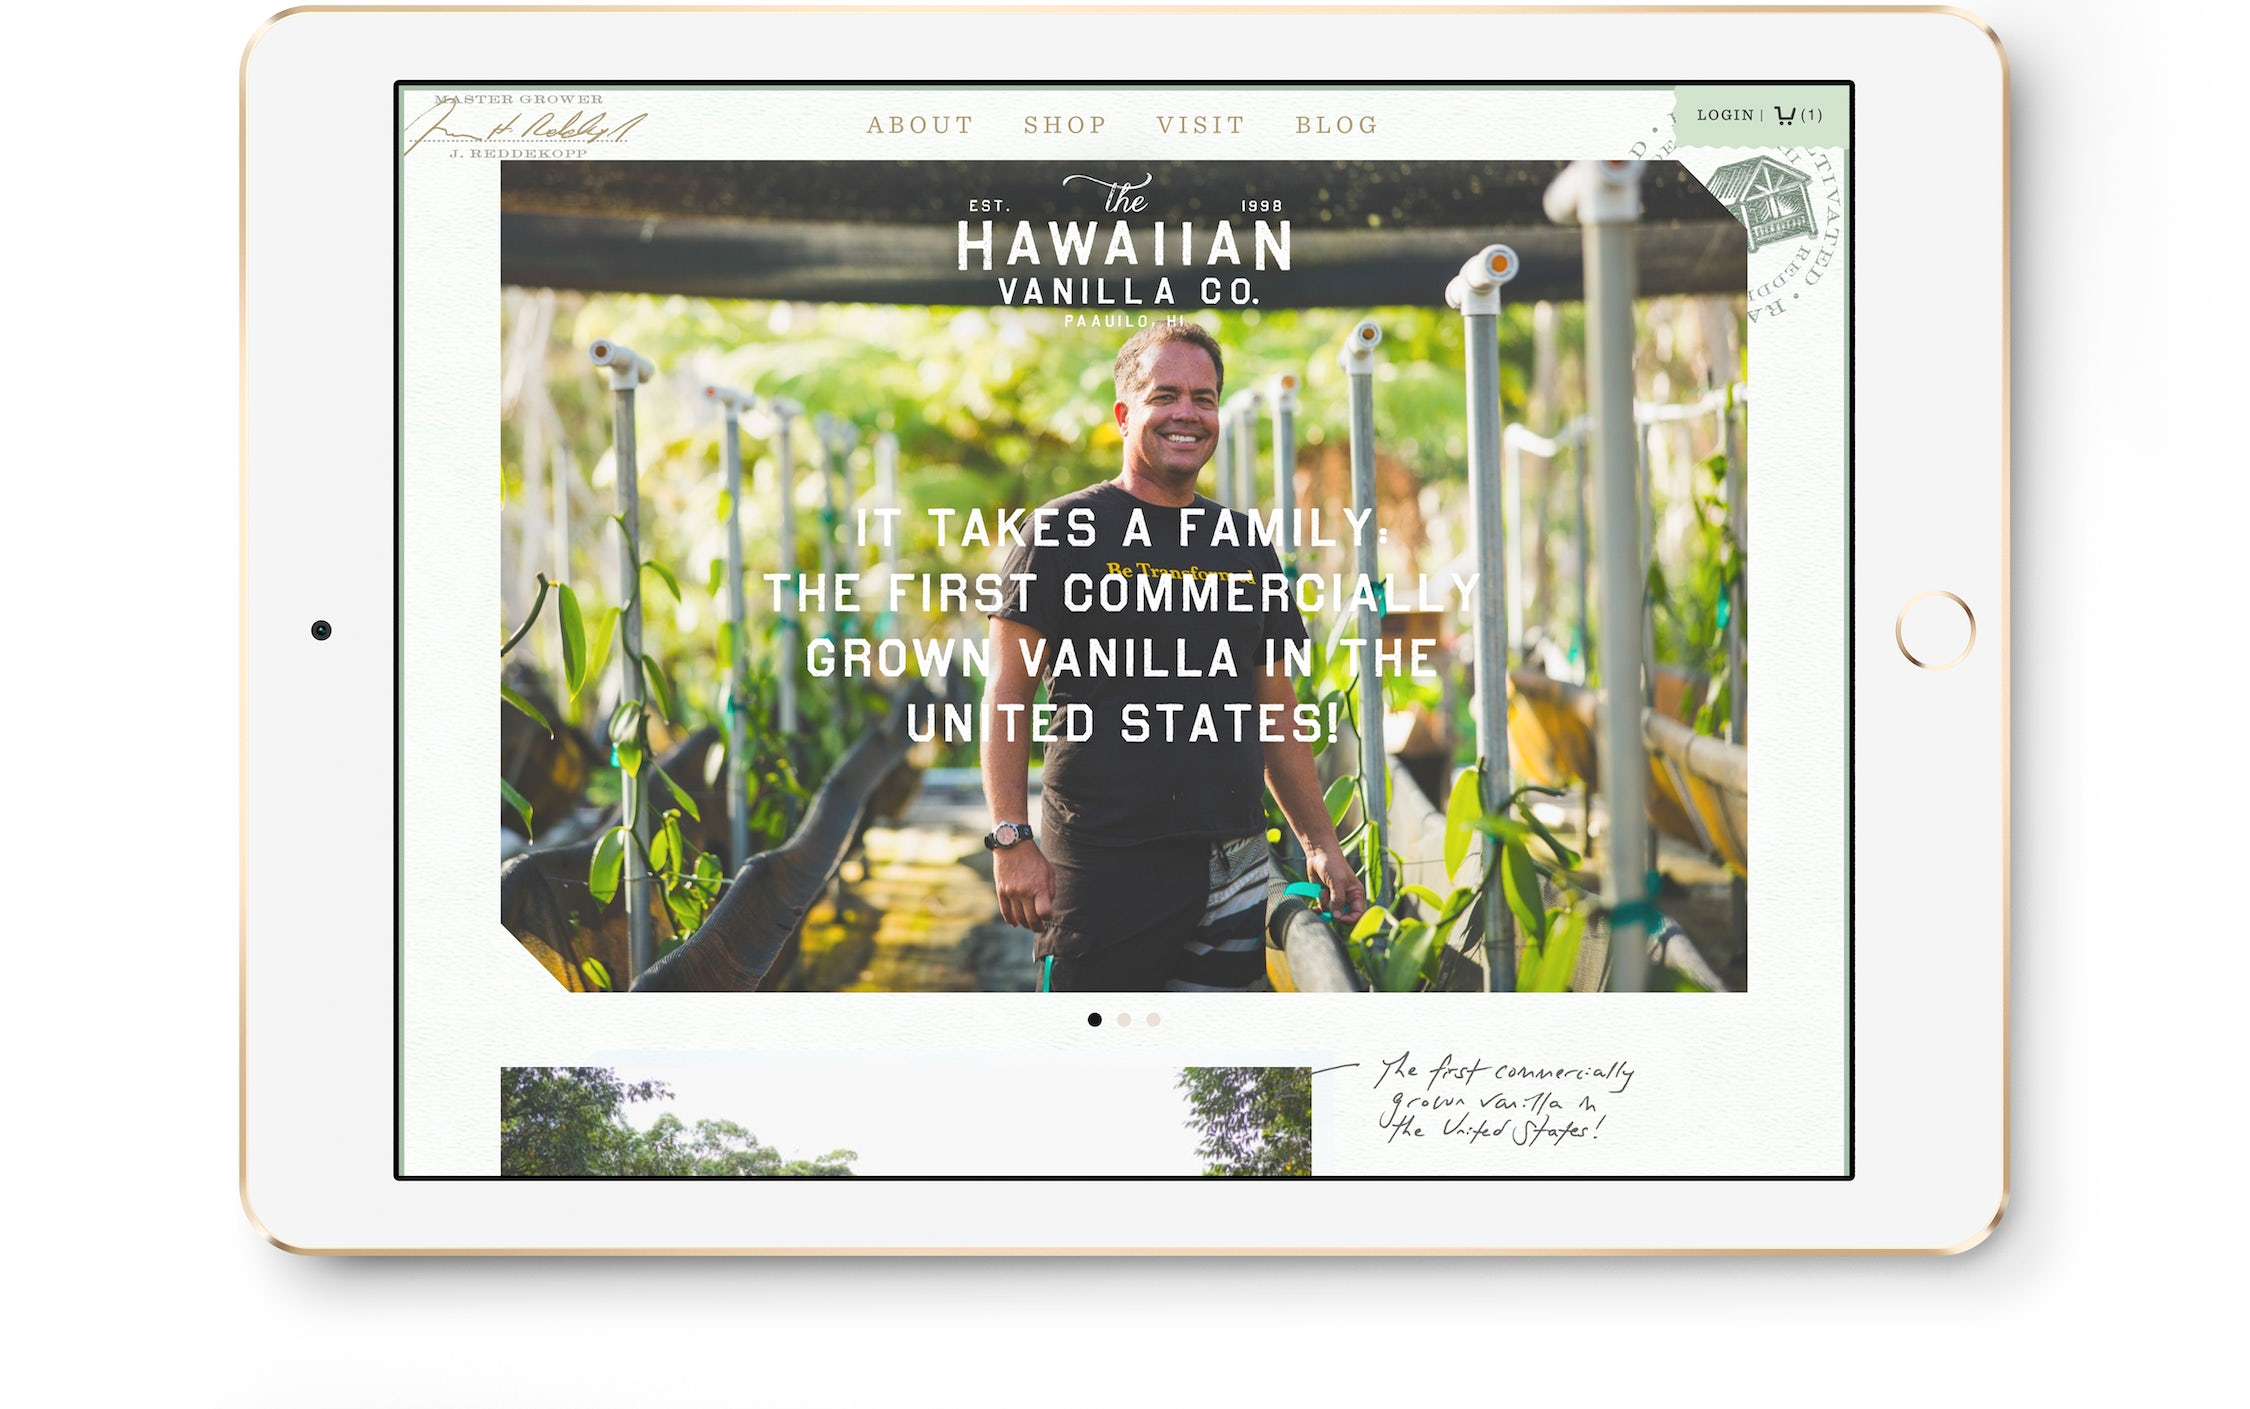 Hawaiian Vanilla Co's platform on an iPad